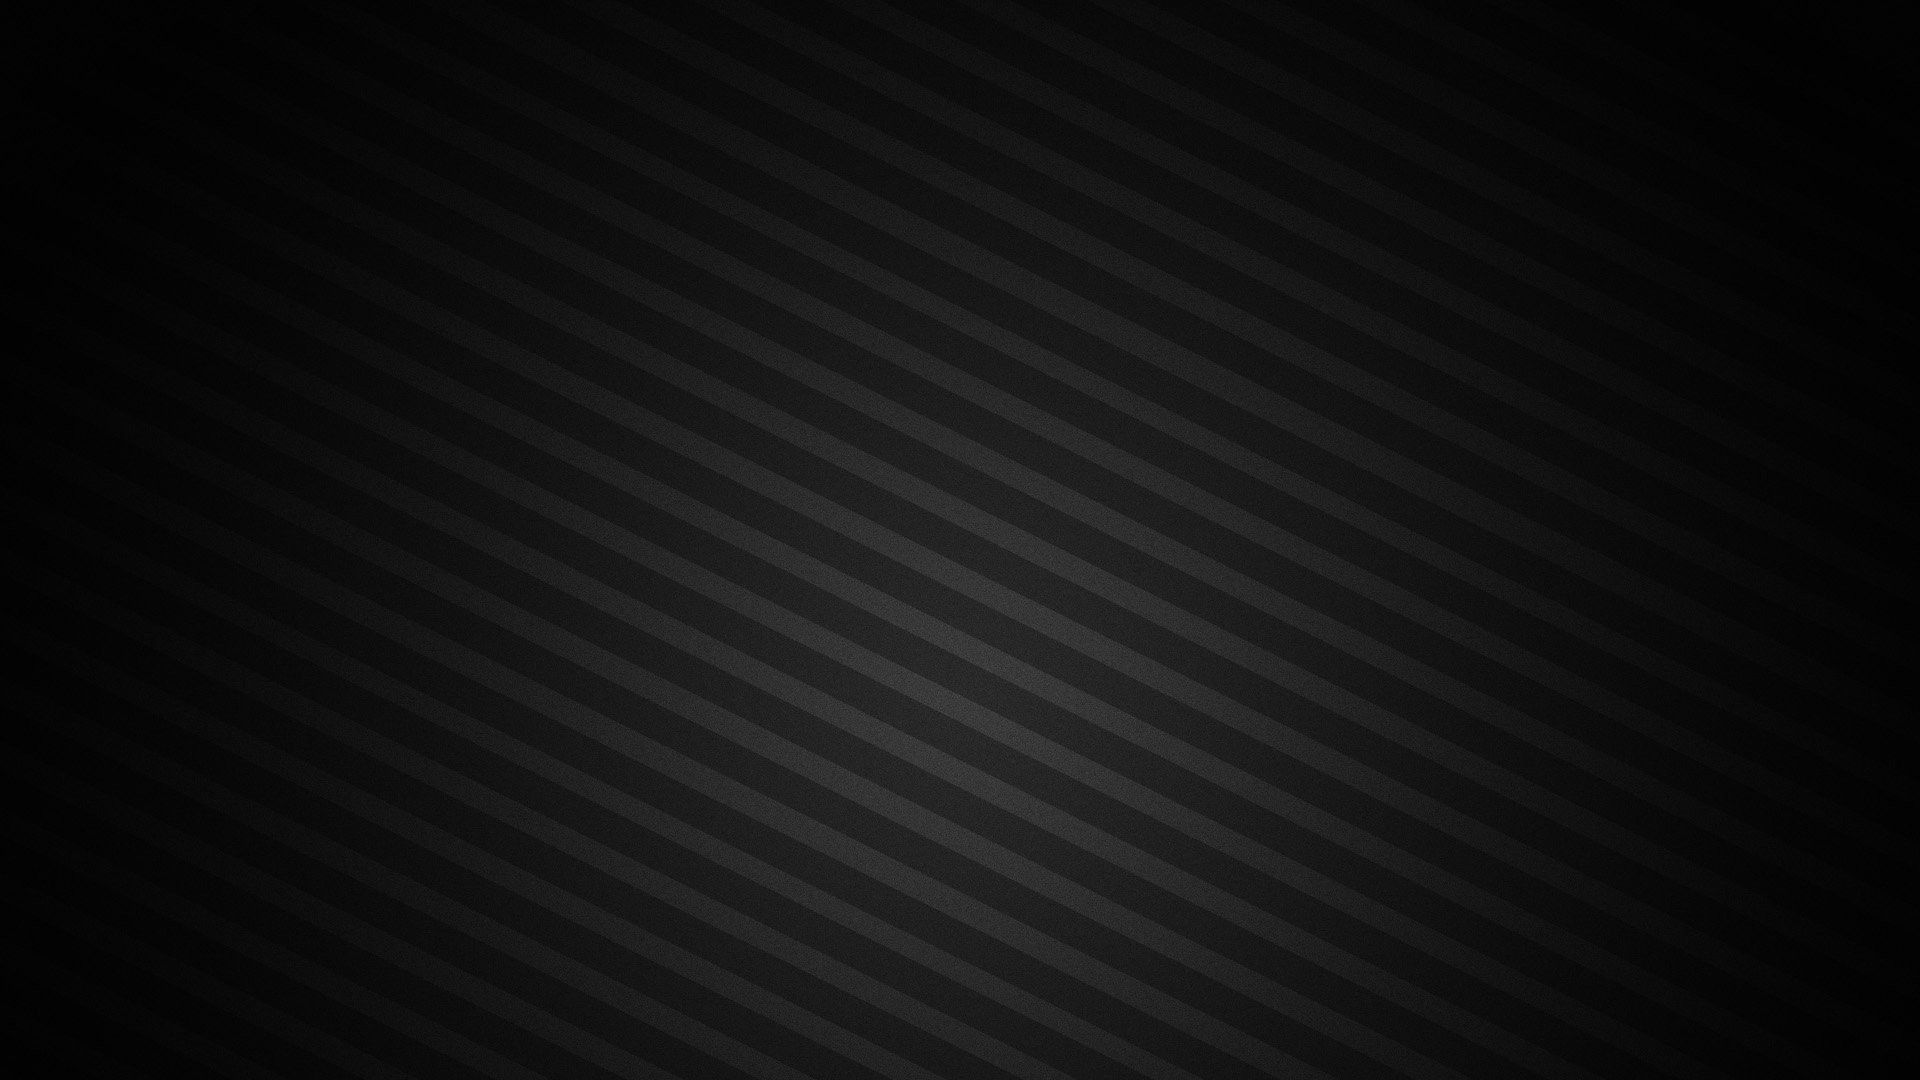 Dark Background 1920x1080 106 images in Collection Page 3 1920x1080